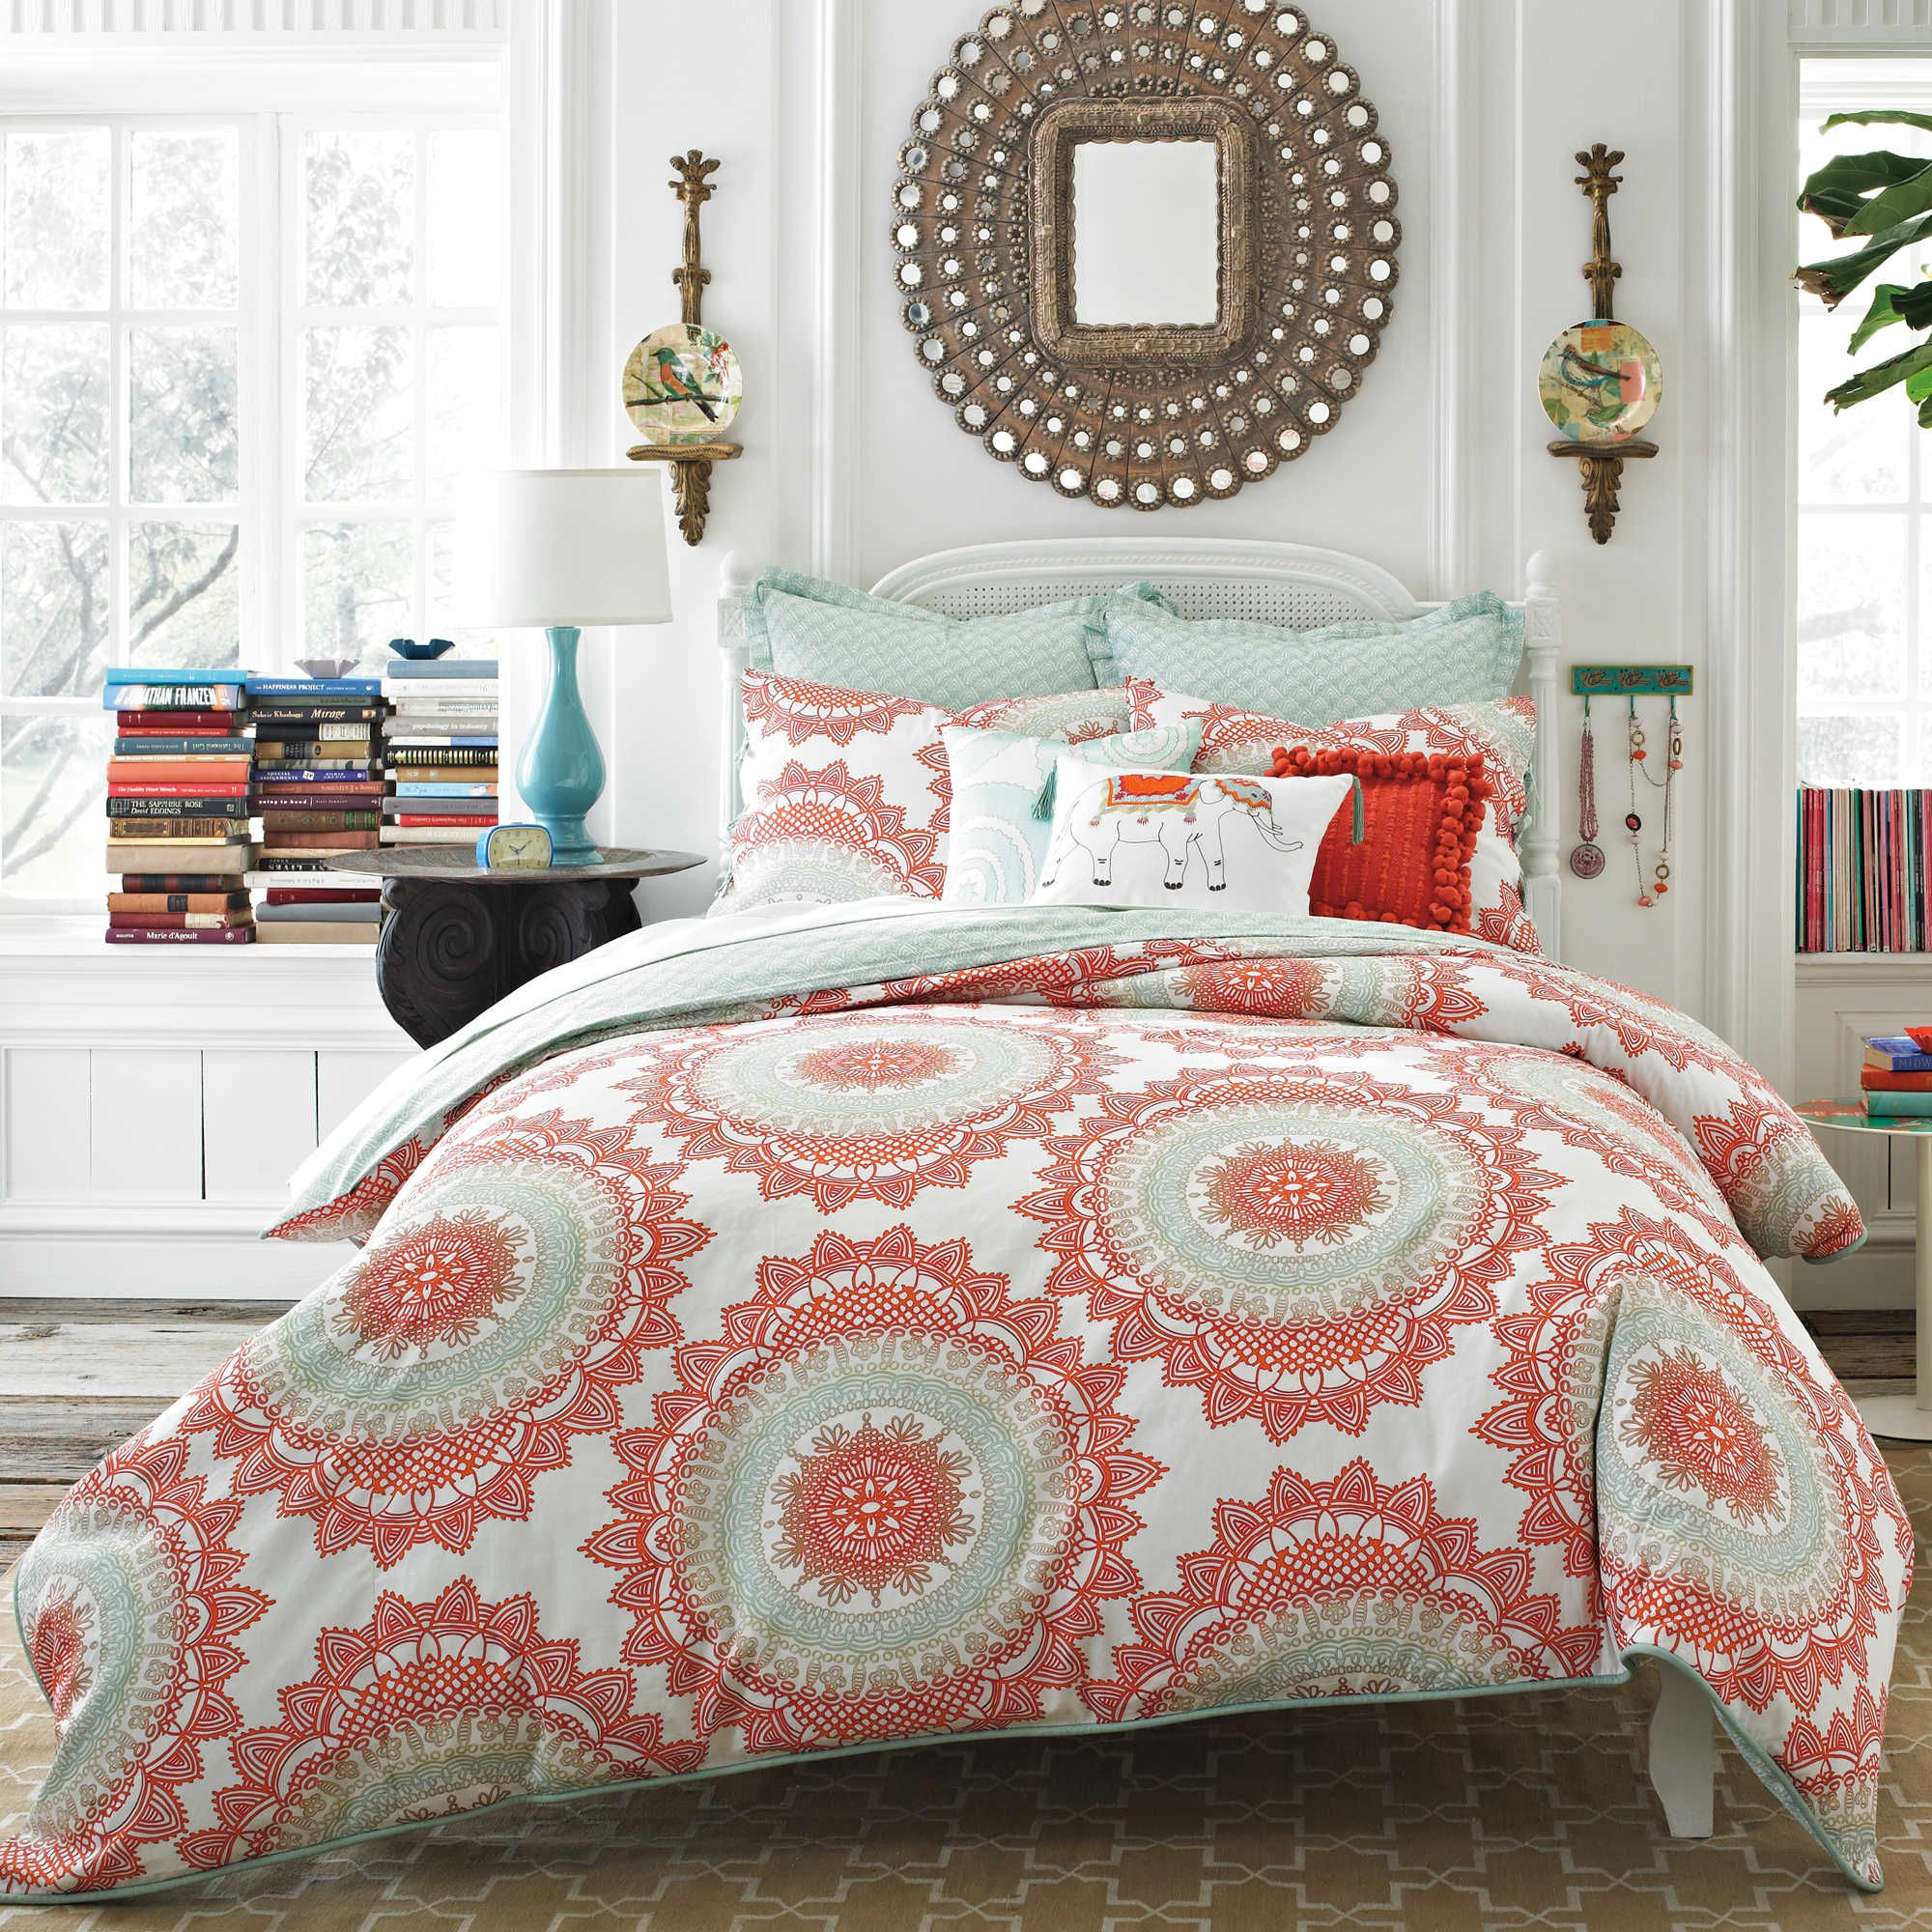 Bedroom Sets Bed Bath And Beyond anthology™ bungalow reversible comforter set in coral | comforter